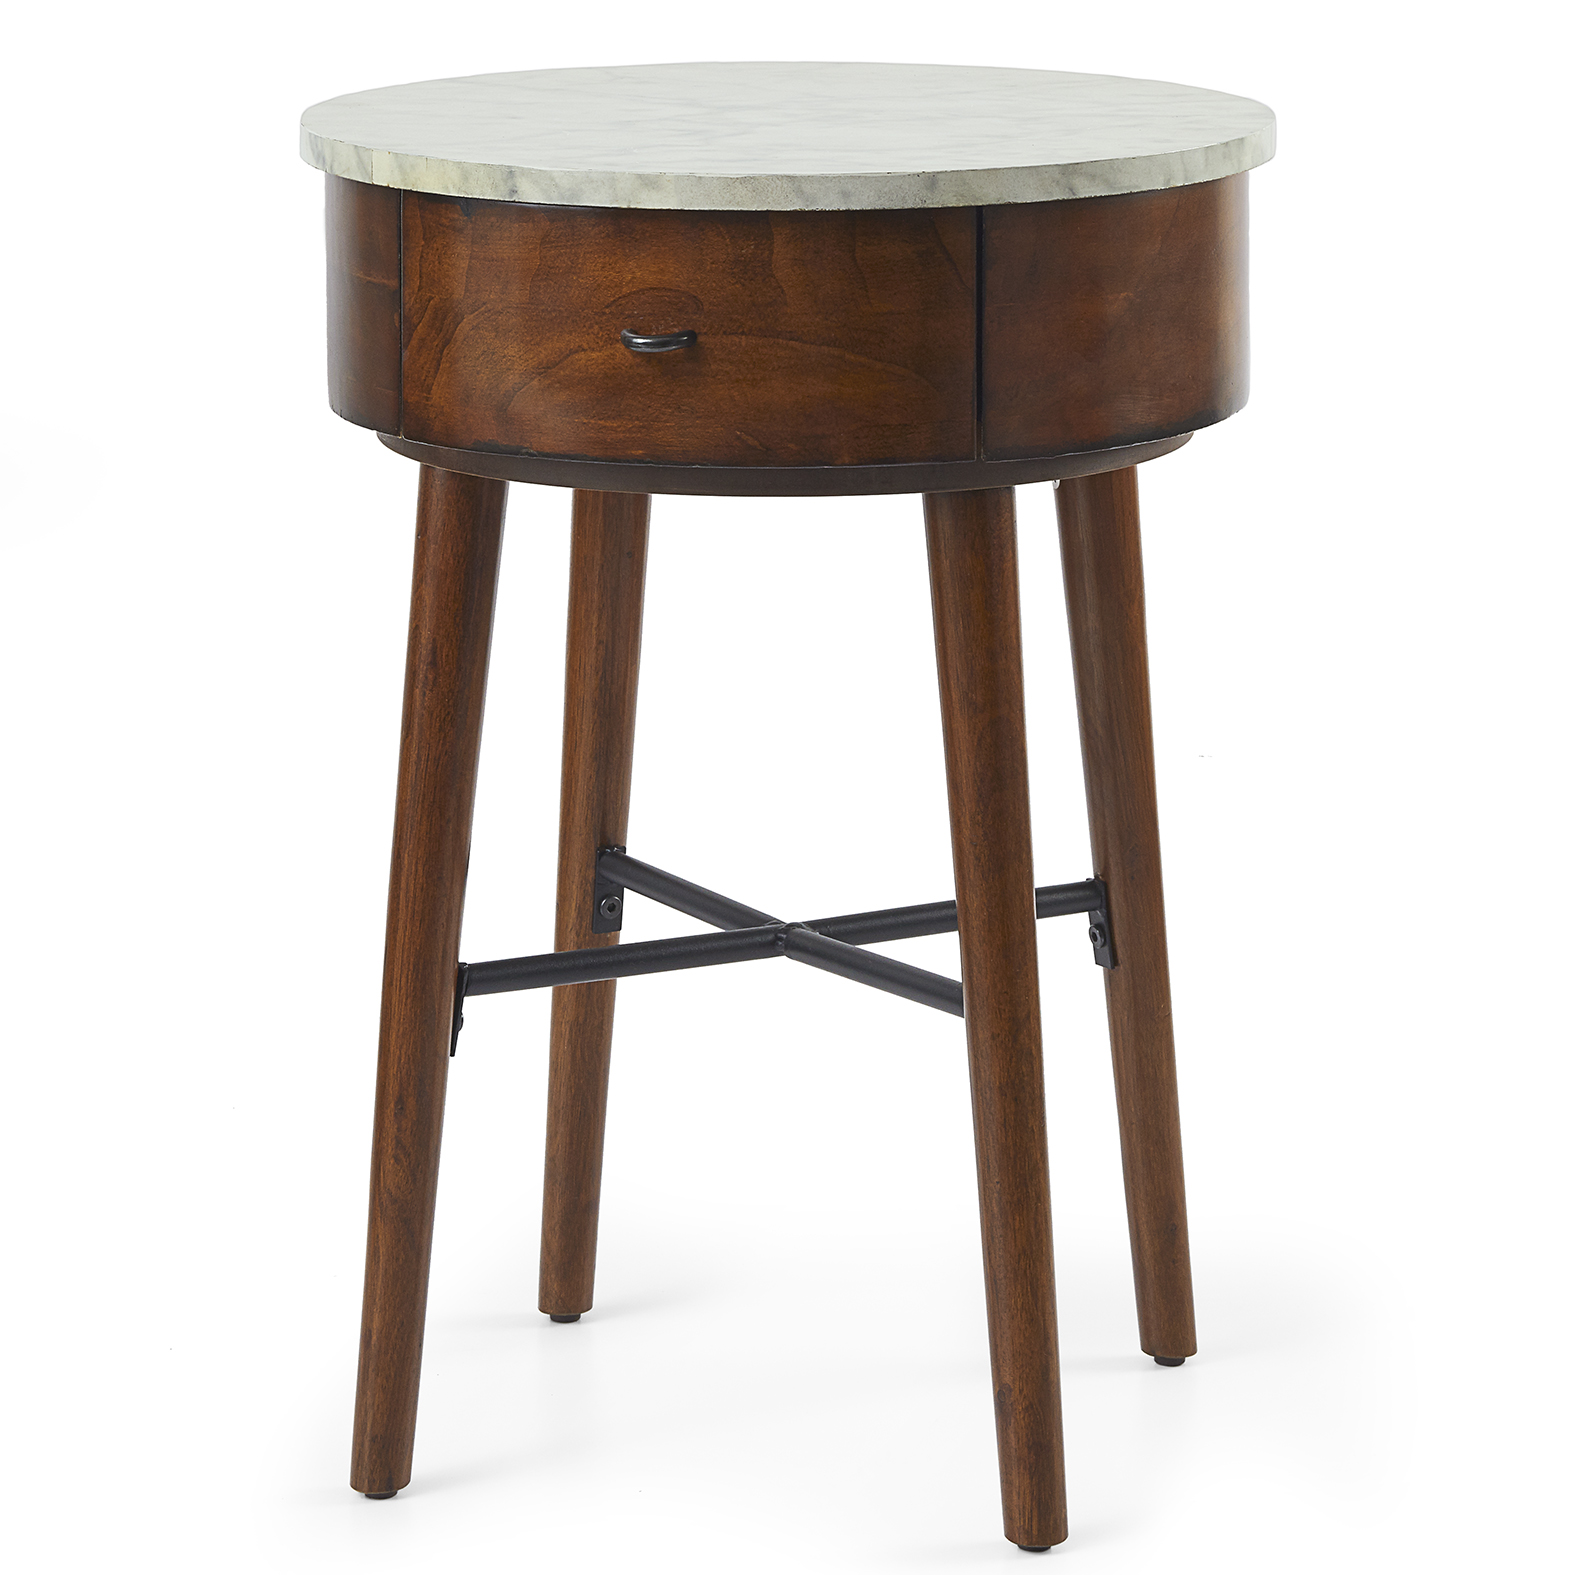 wood wooden round accent table sofa couch side end drawer storage with modern living lift coffee ikea small rustic counter height dining room sets acrylic clear breakfast nook